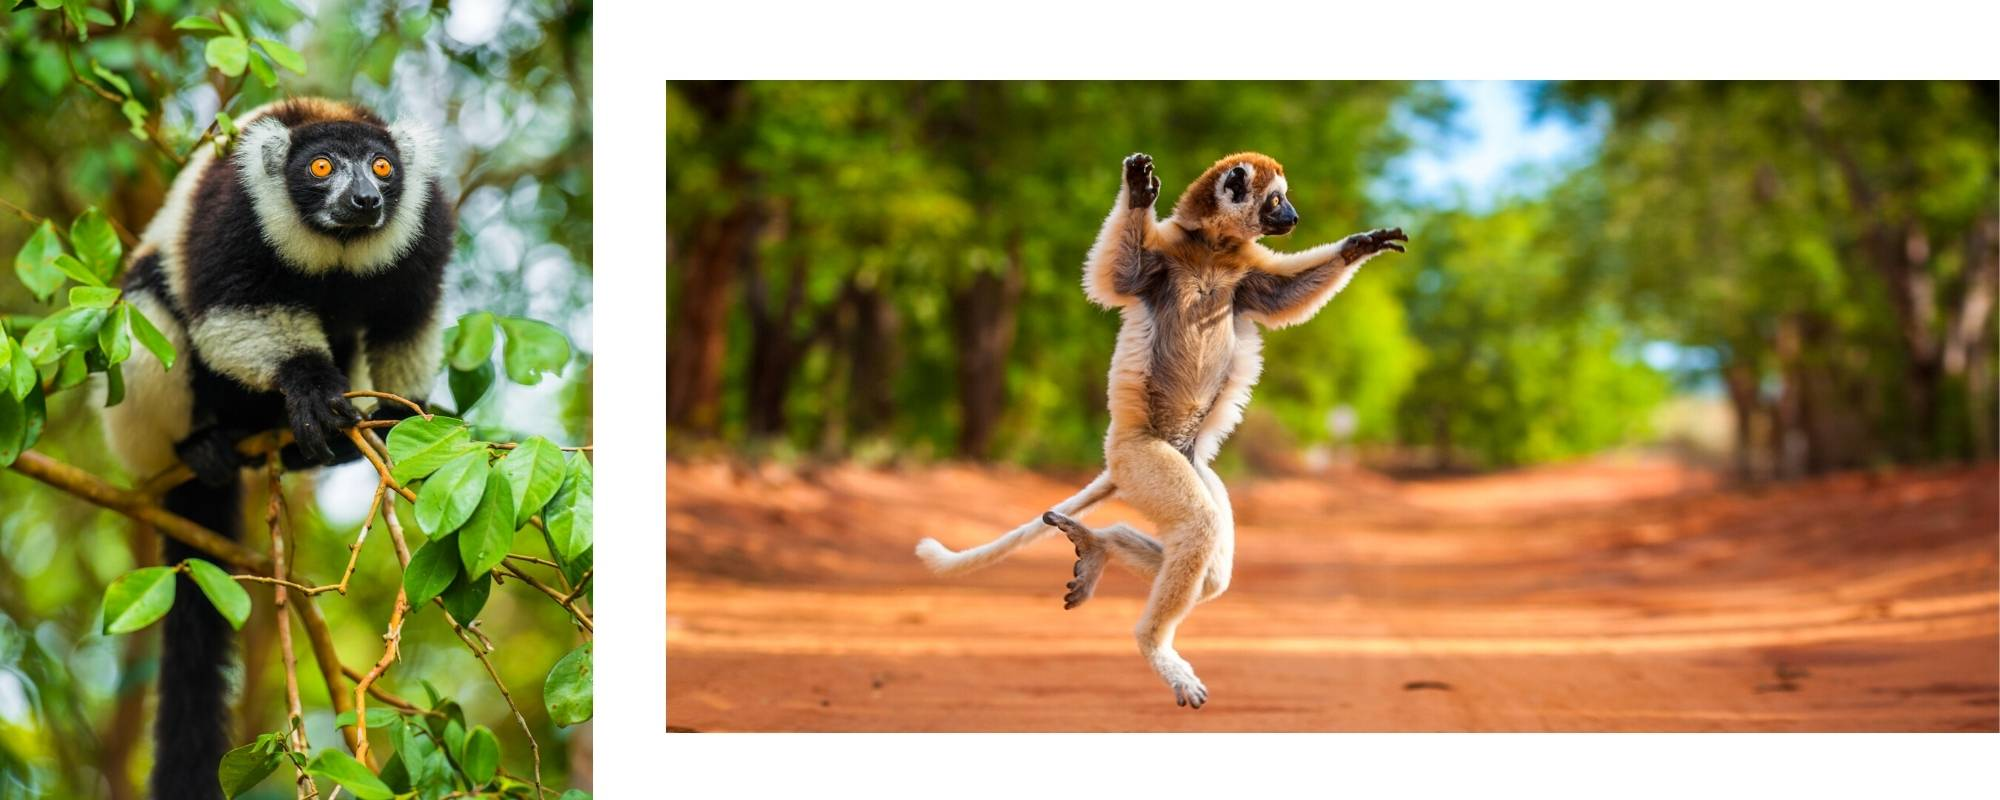 Verreaux's sifaka as it hops along the ground on two feet between trees